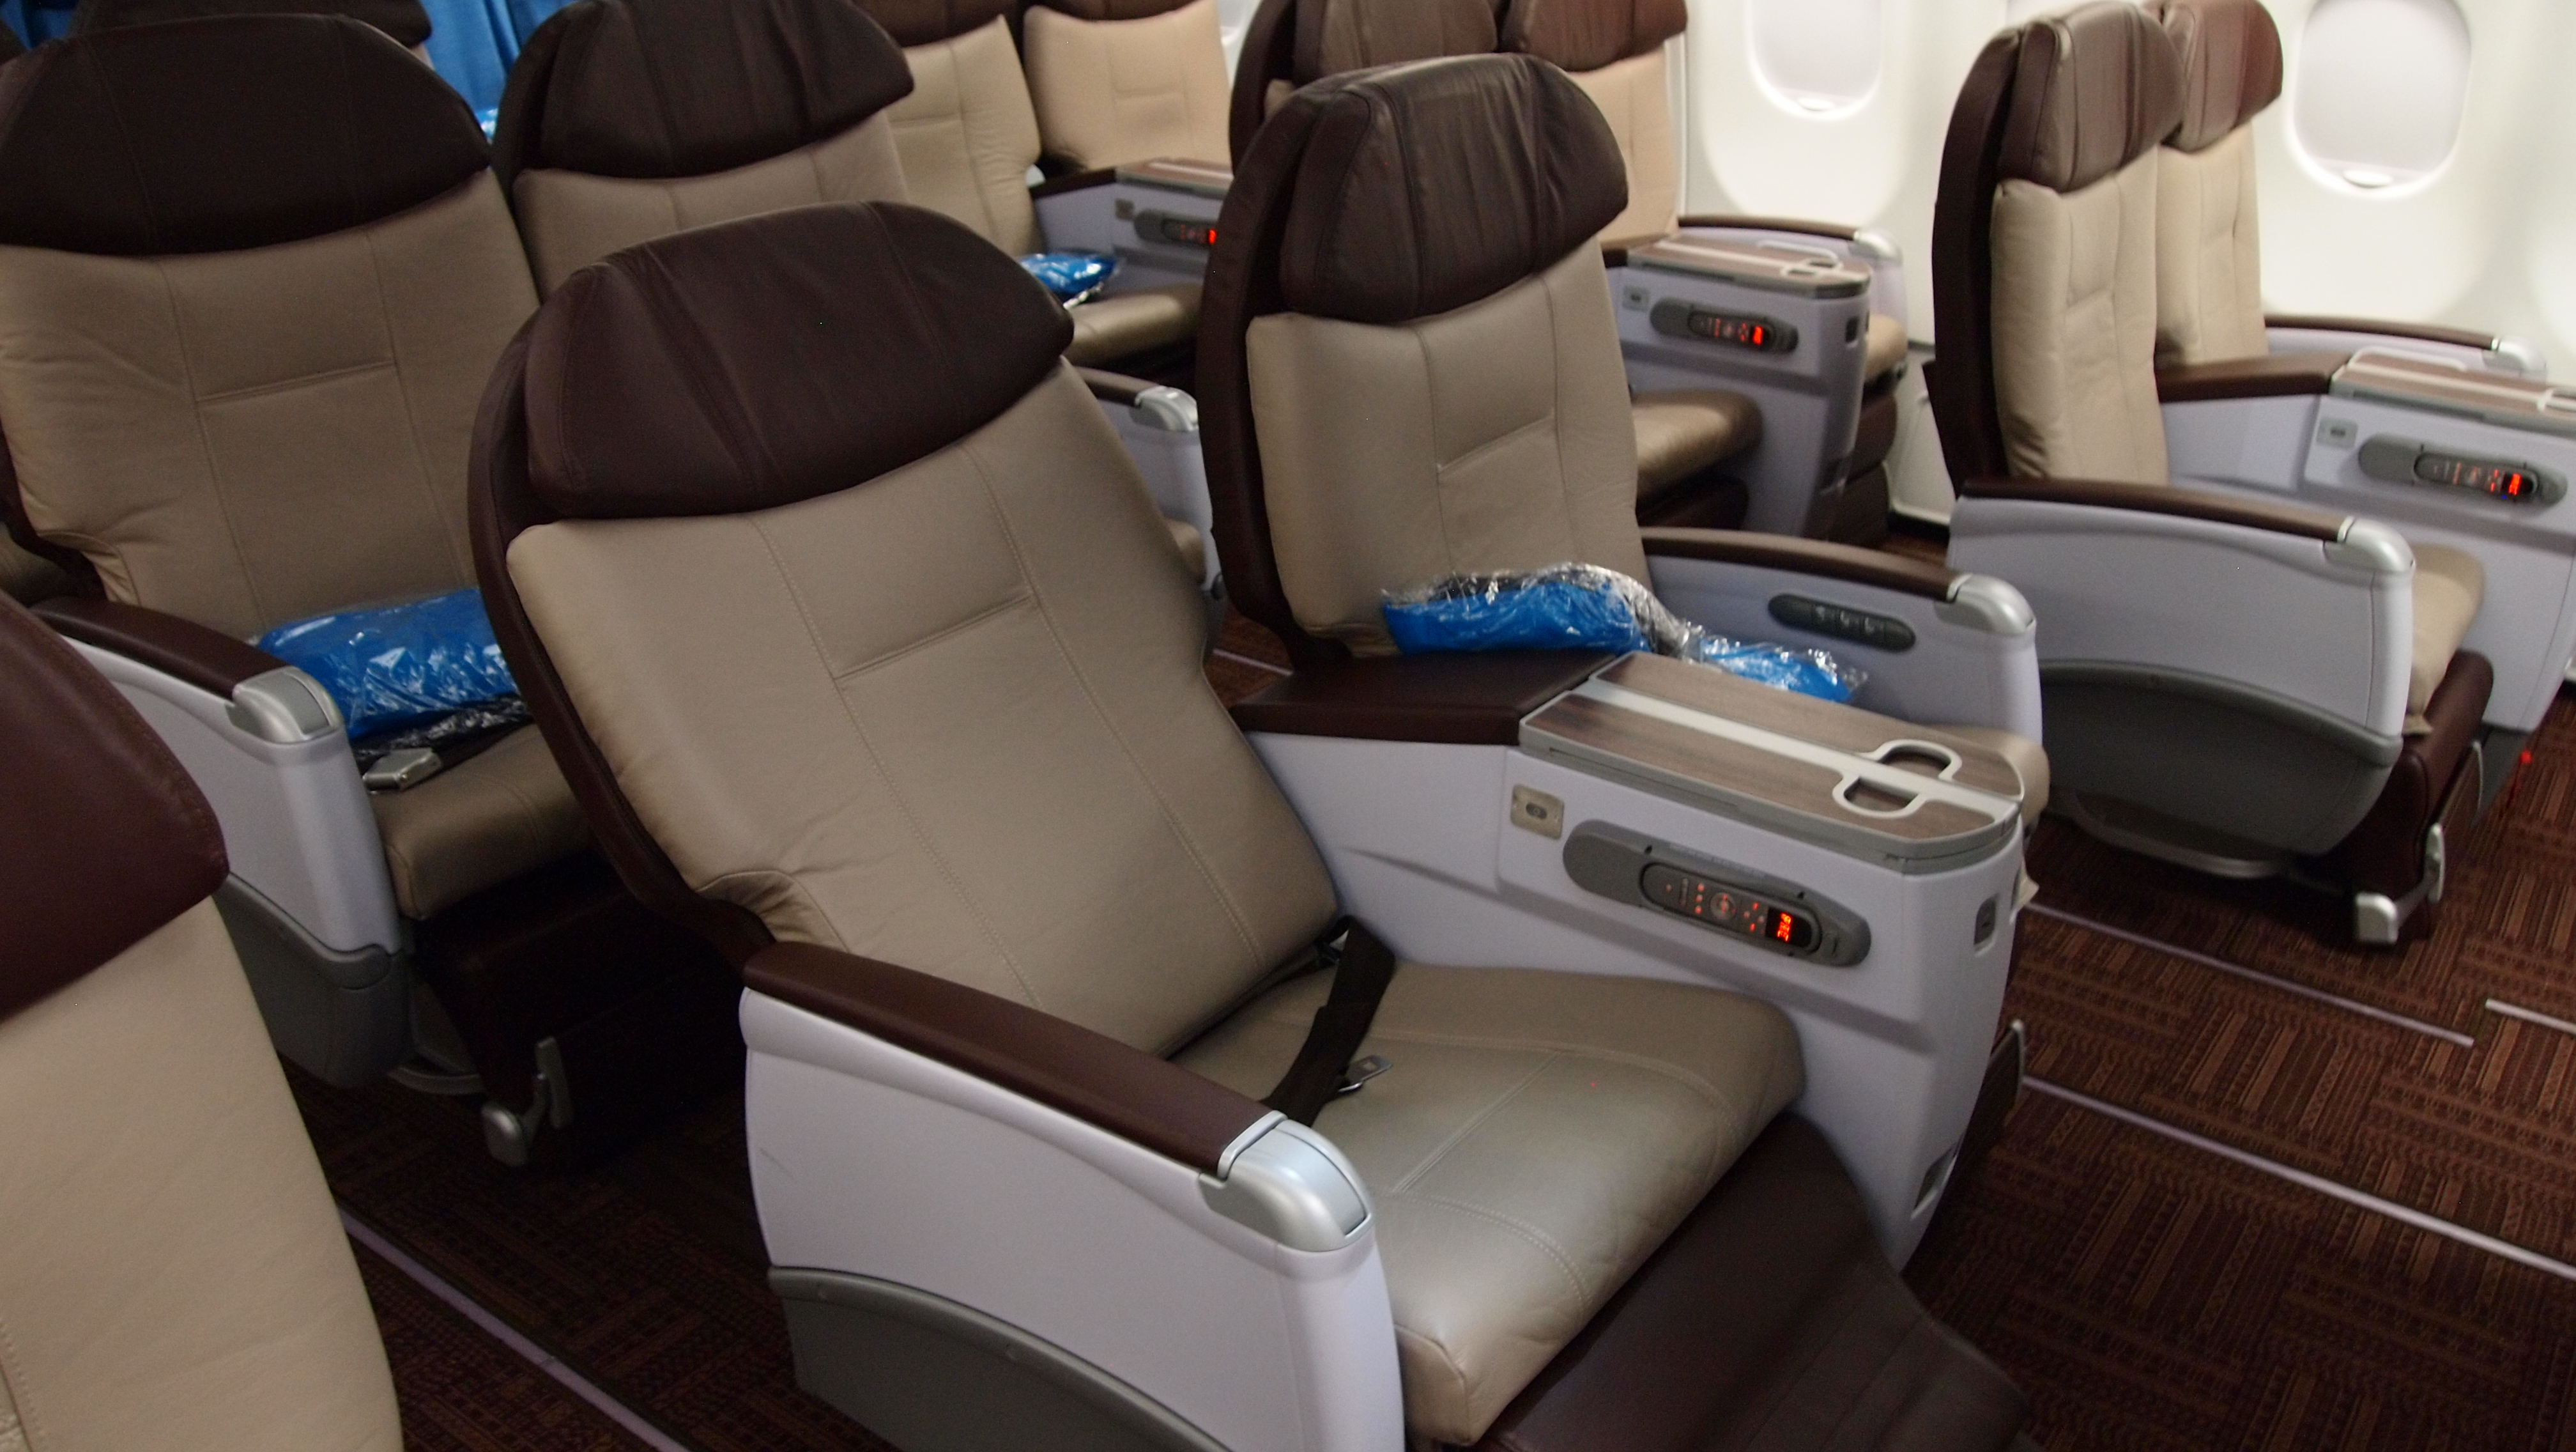 TRIP REPORT Hawaiian Airlines A330 200 Business Class